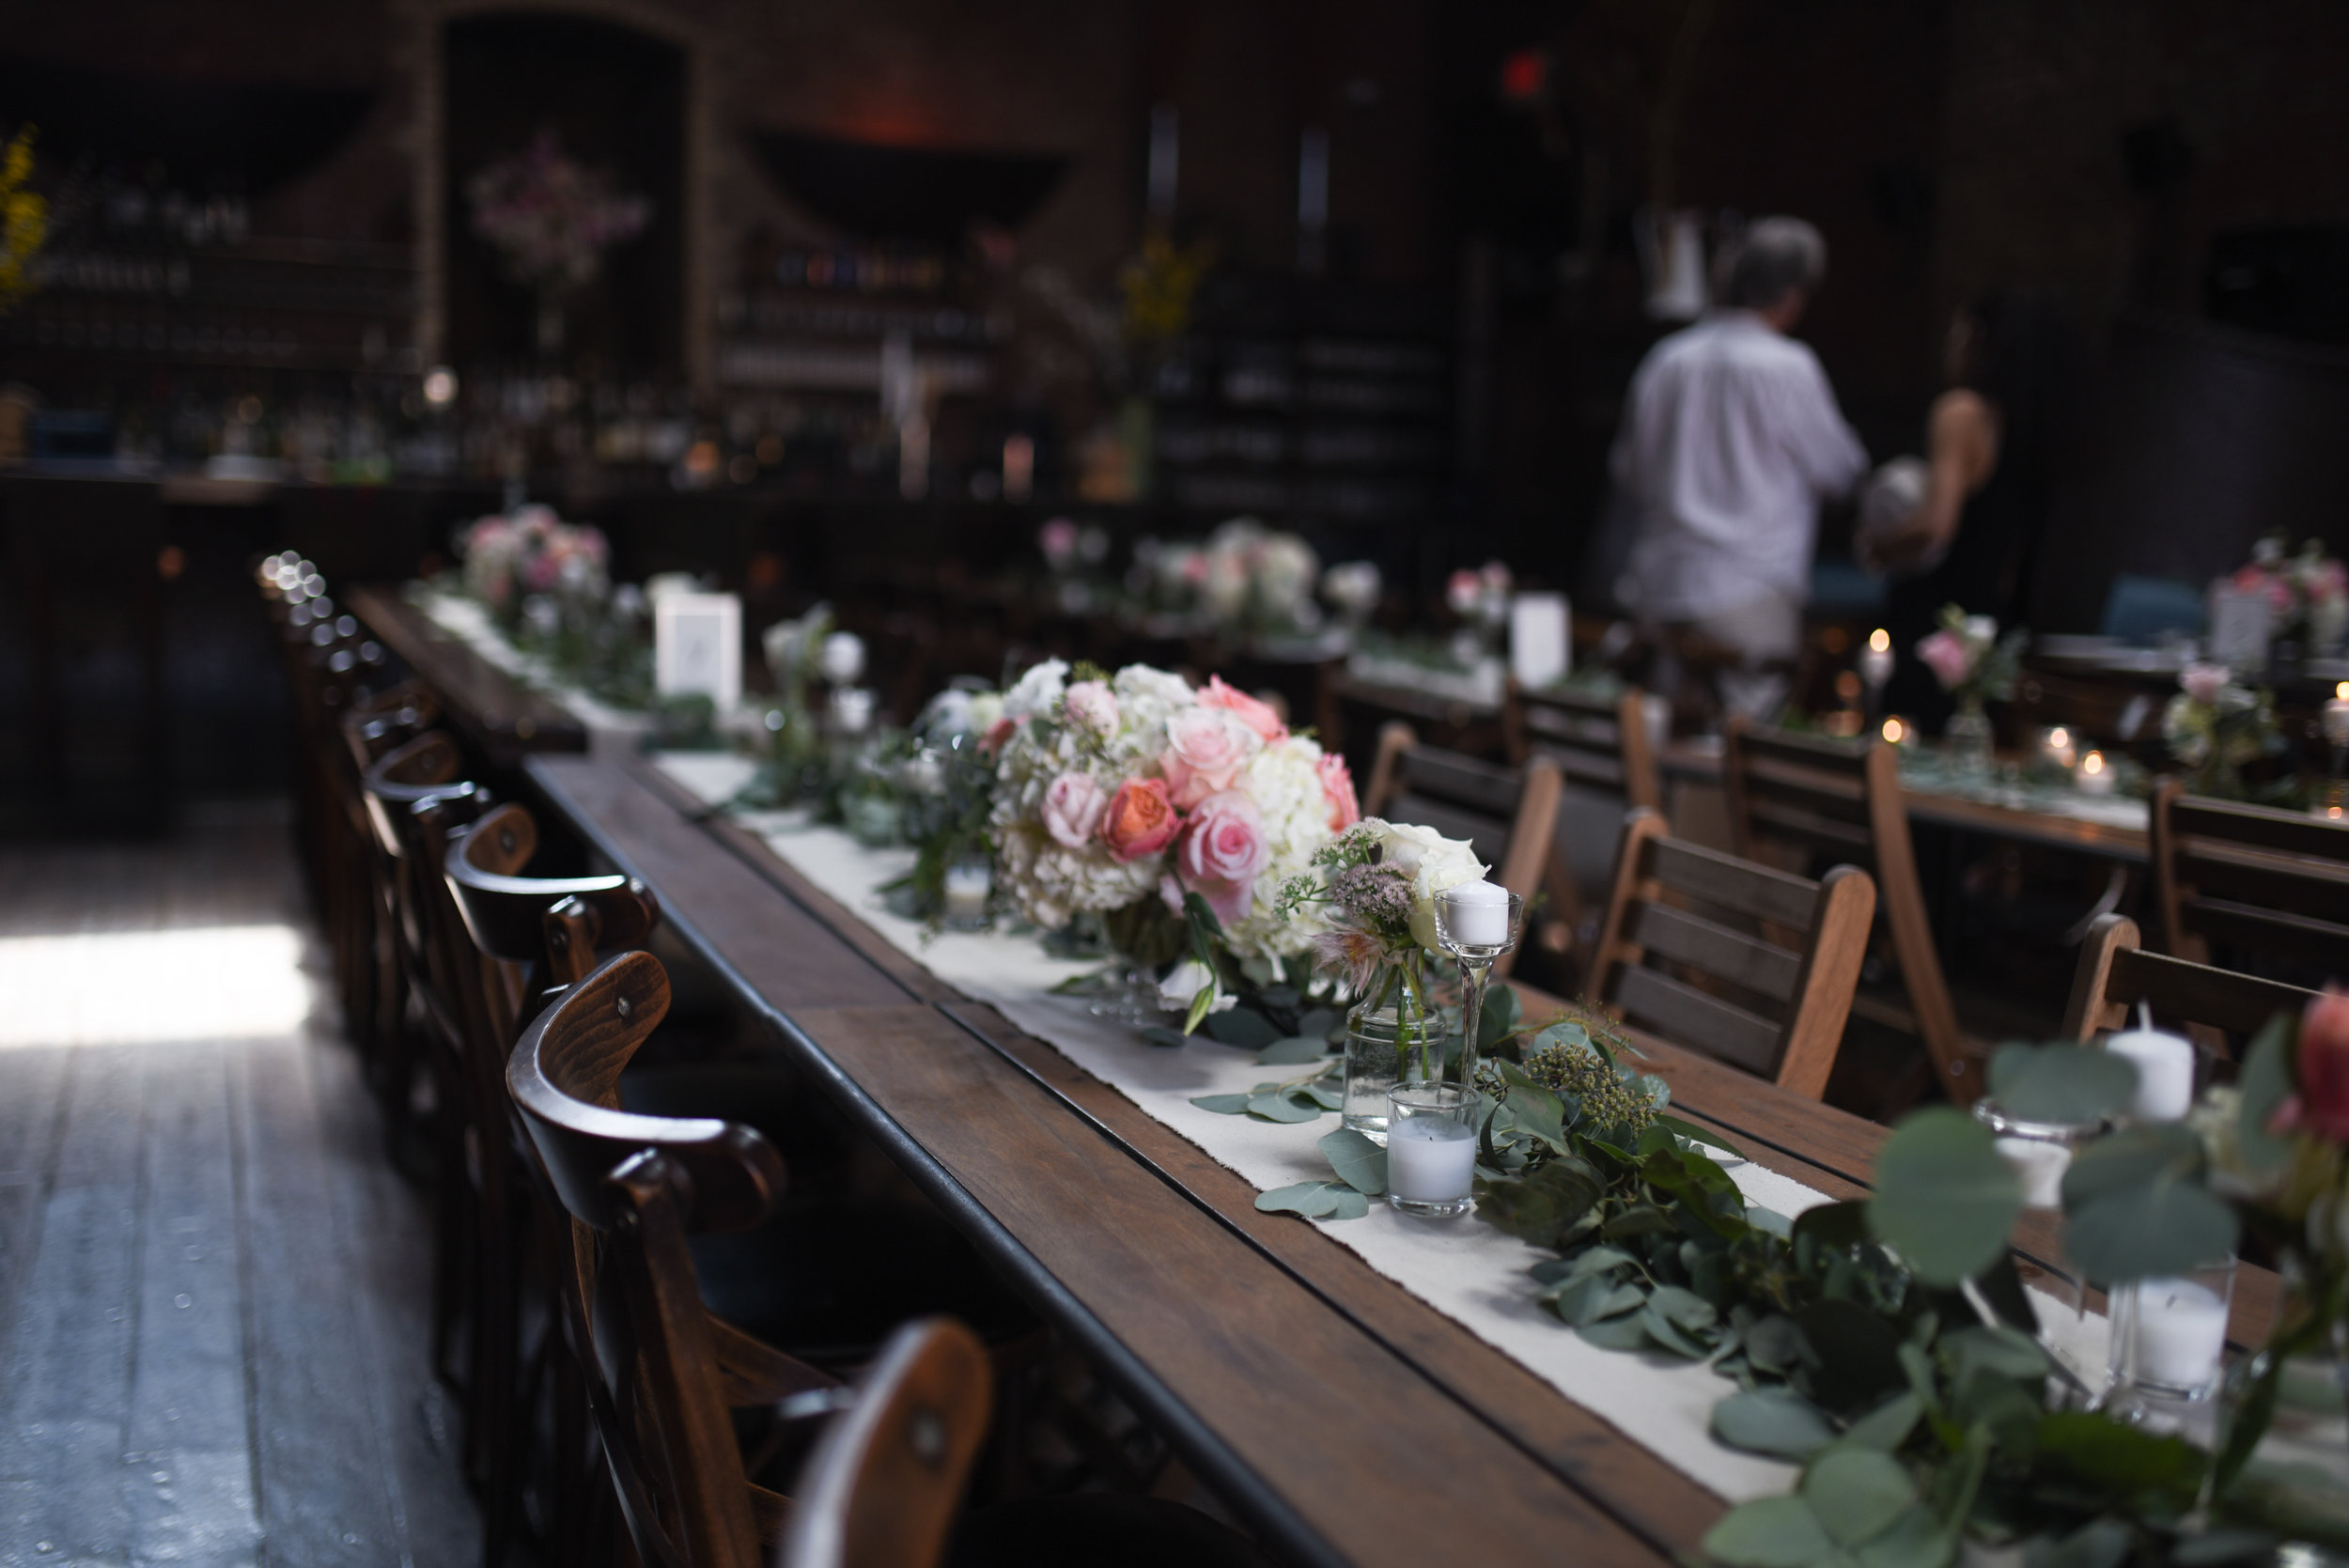 Lovely table settings for this wedding at MyMoon in Brooklyn - cascading garland, chalice centerpieces, and bud vases